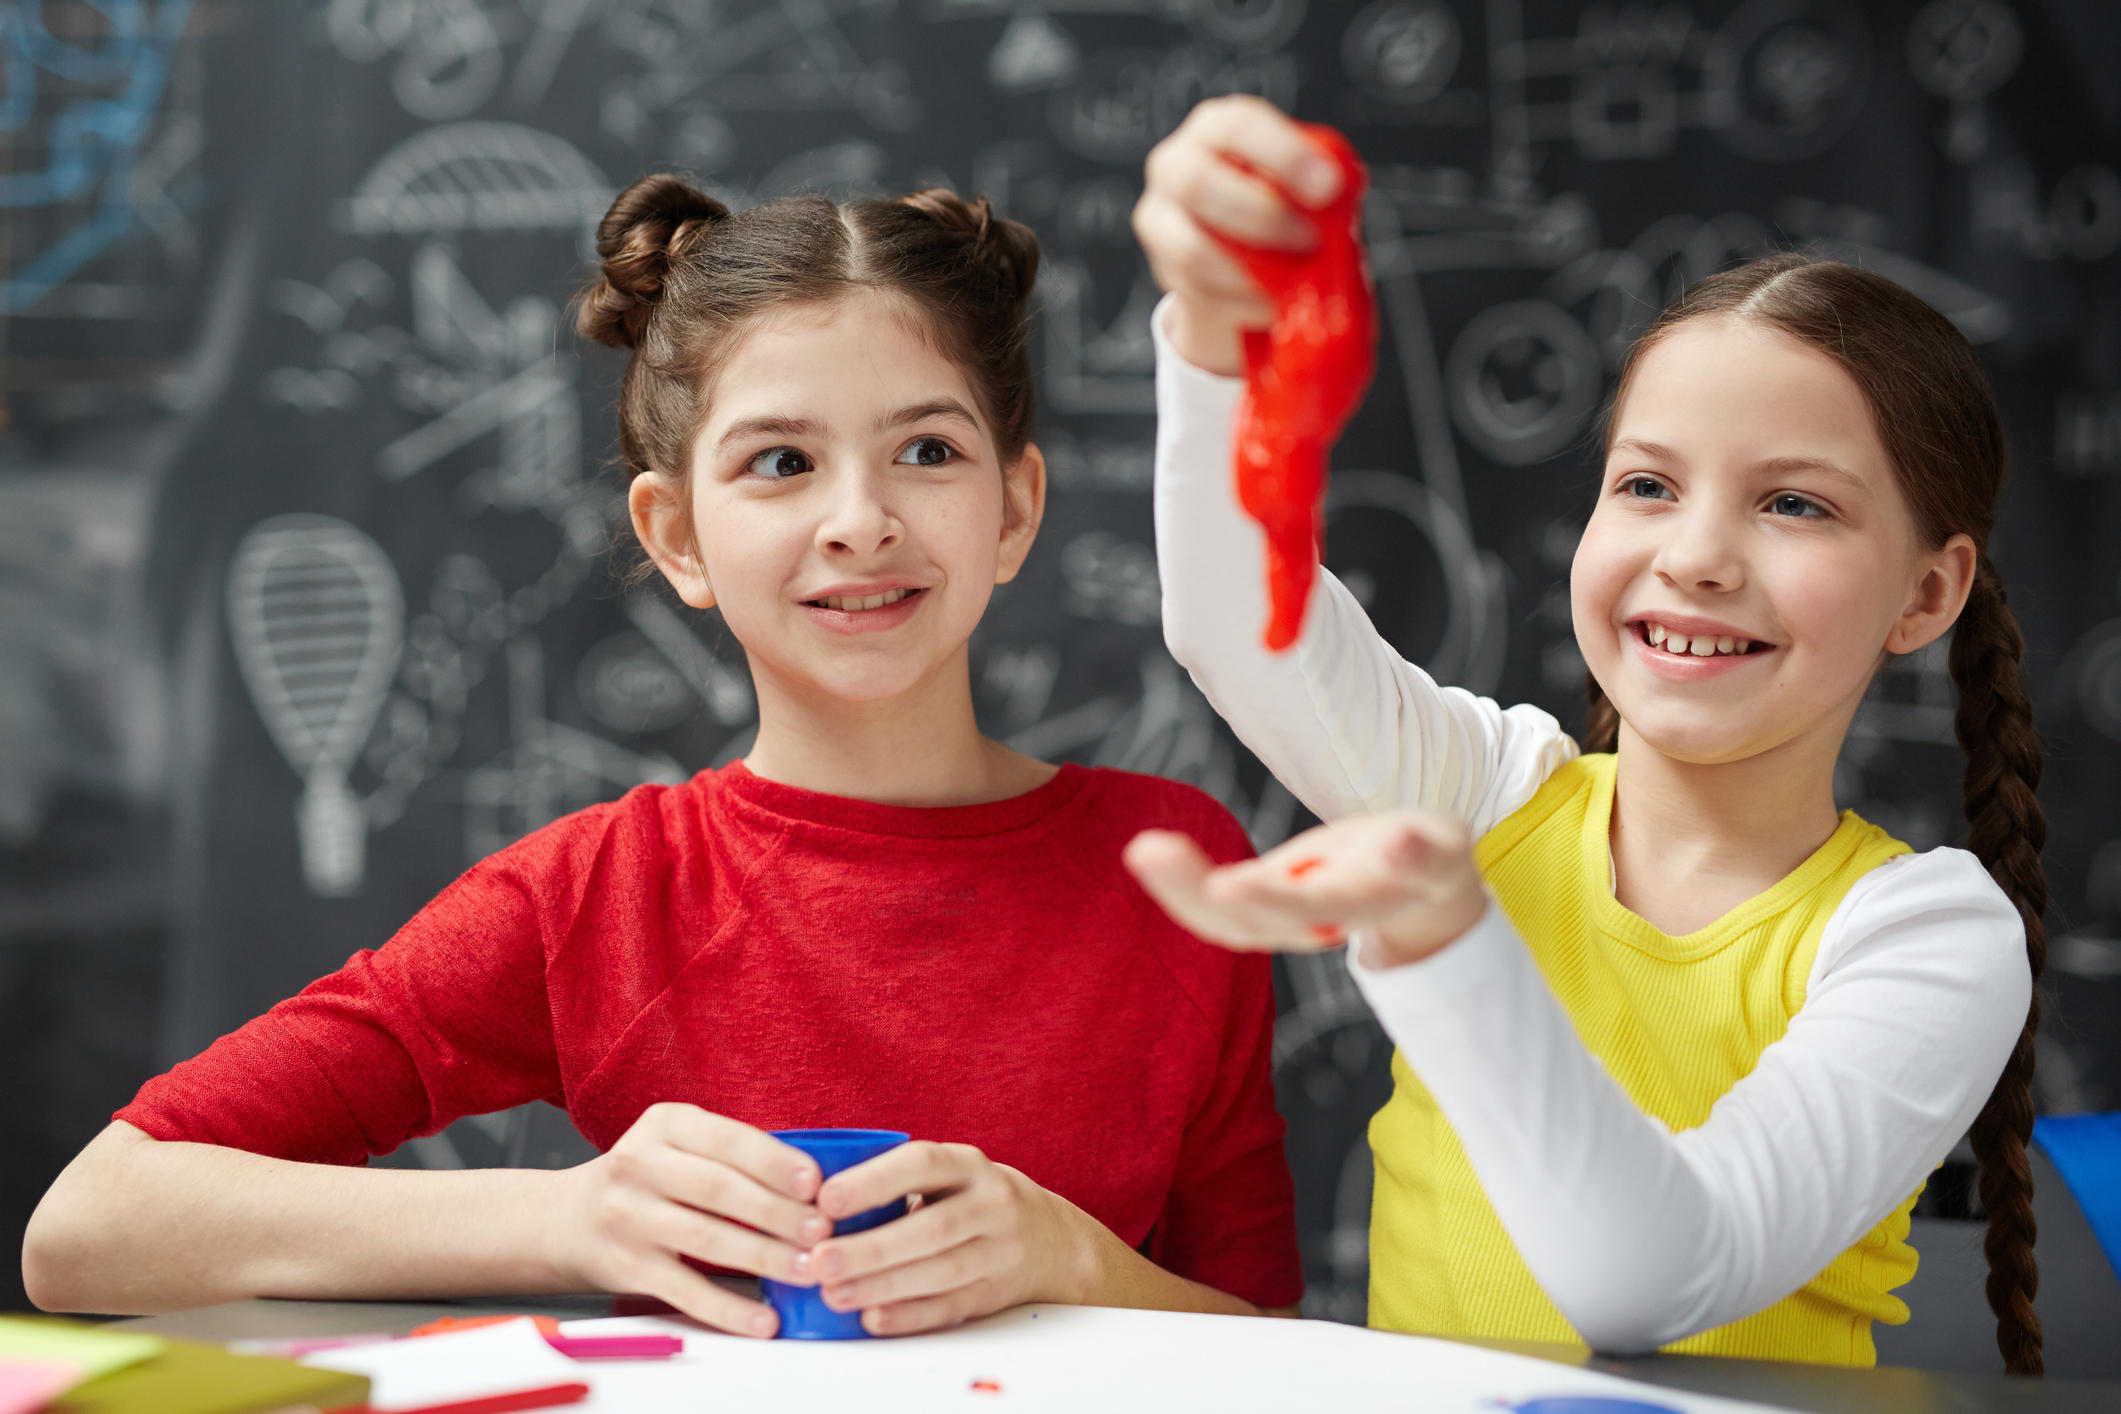 Playful girl having fun with red slime while her friend looking at this